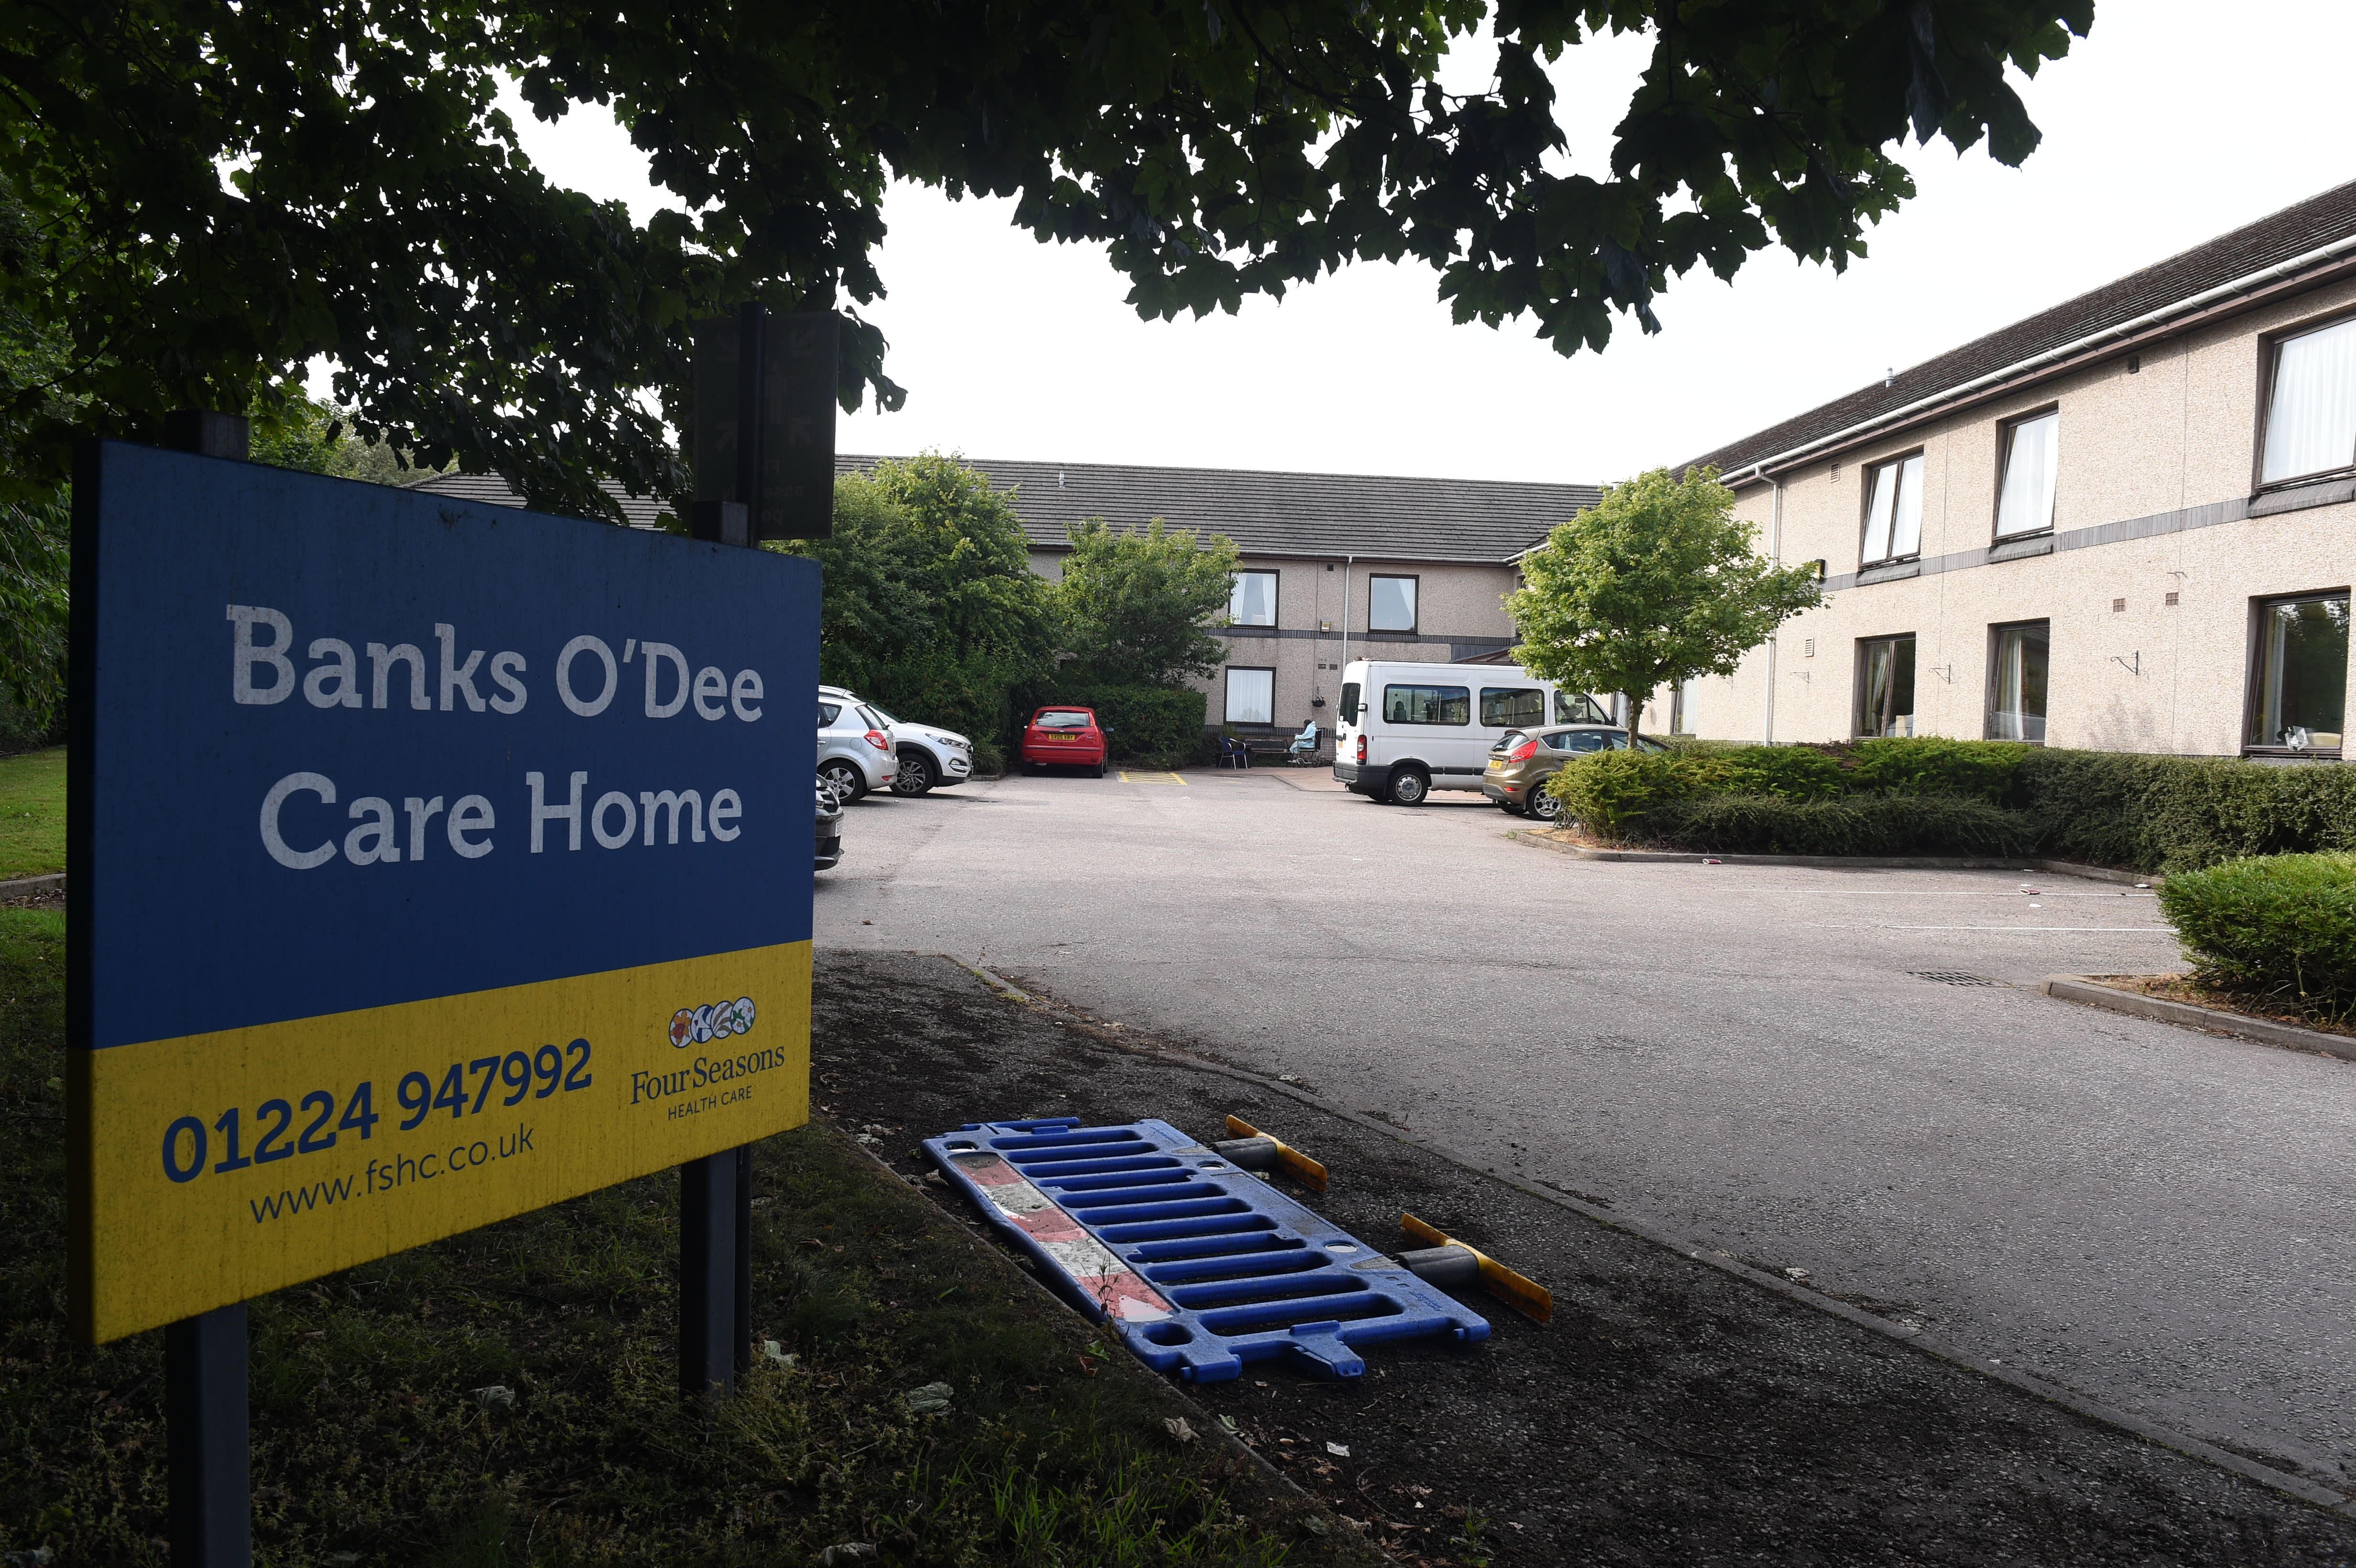 Banks O' Dee Care Home, Aberdeen